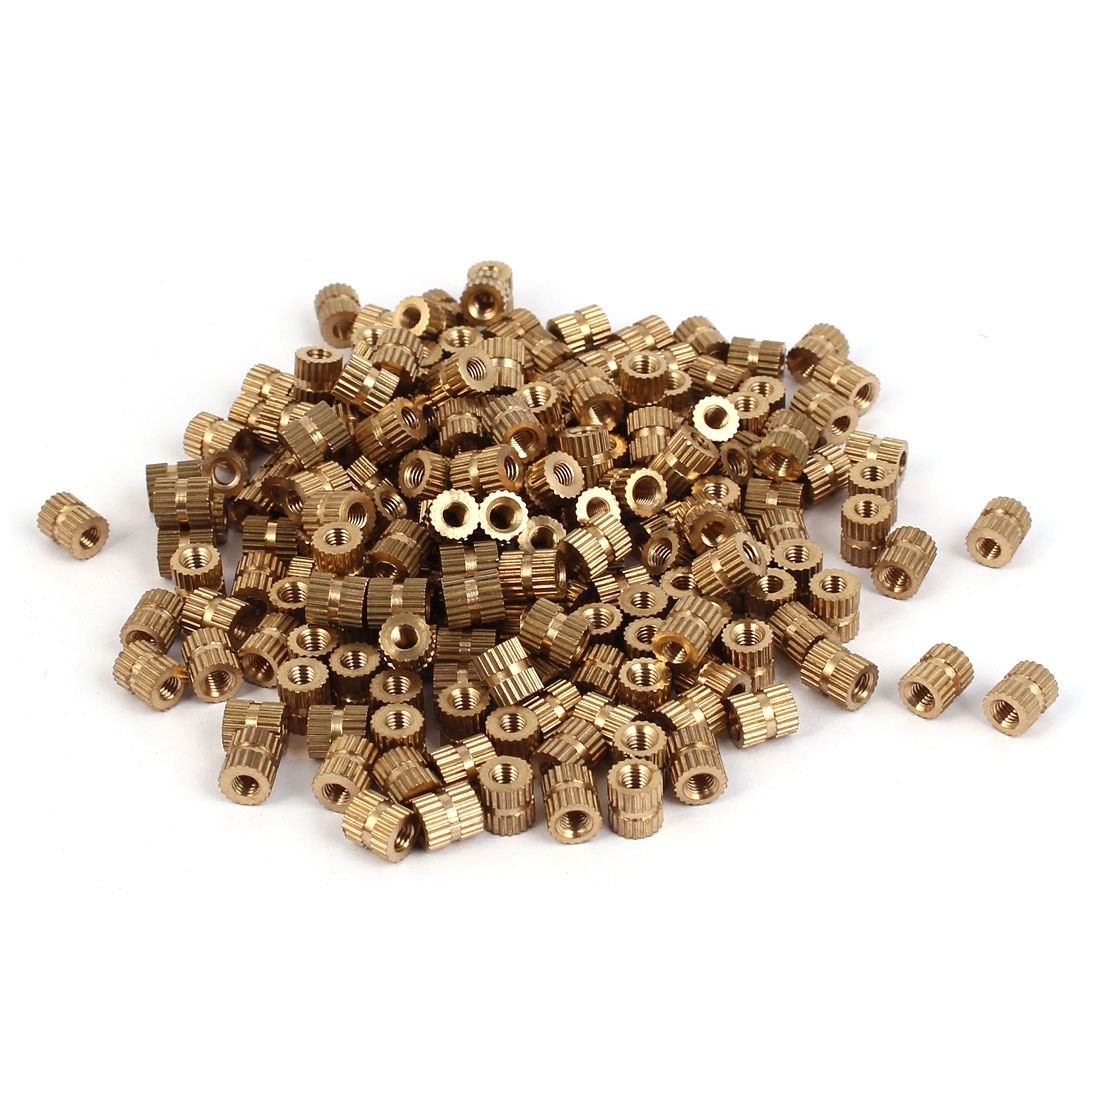 M3 x 6mm Female Thread Brass Knurled Threaded Round Insert Embedded Nuts 200PCS